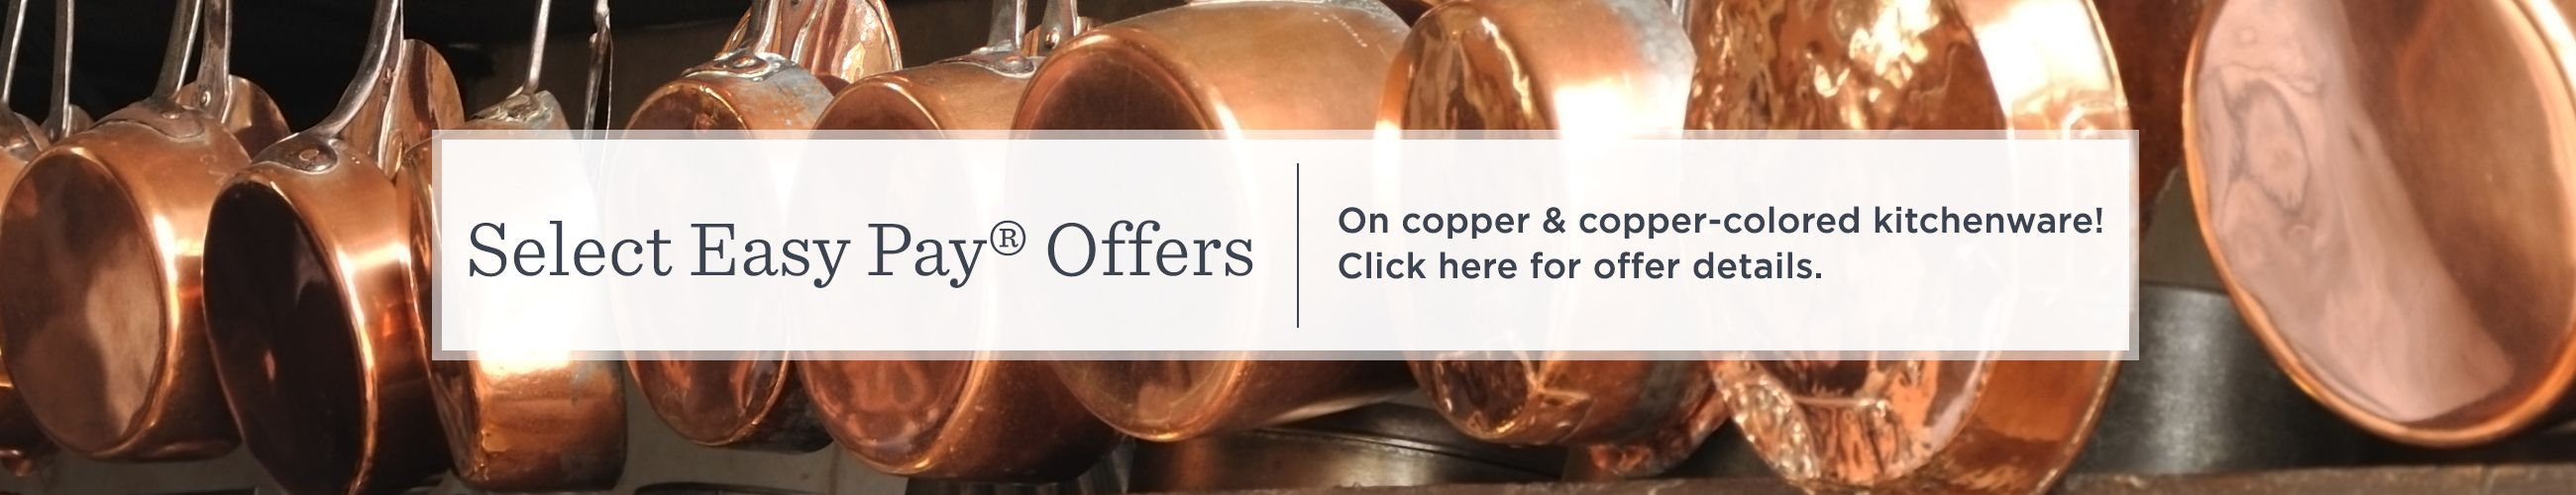 Select Easy Pay® Offers. On copper & copper-colored kitchenware!  Click here for offer details.